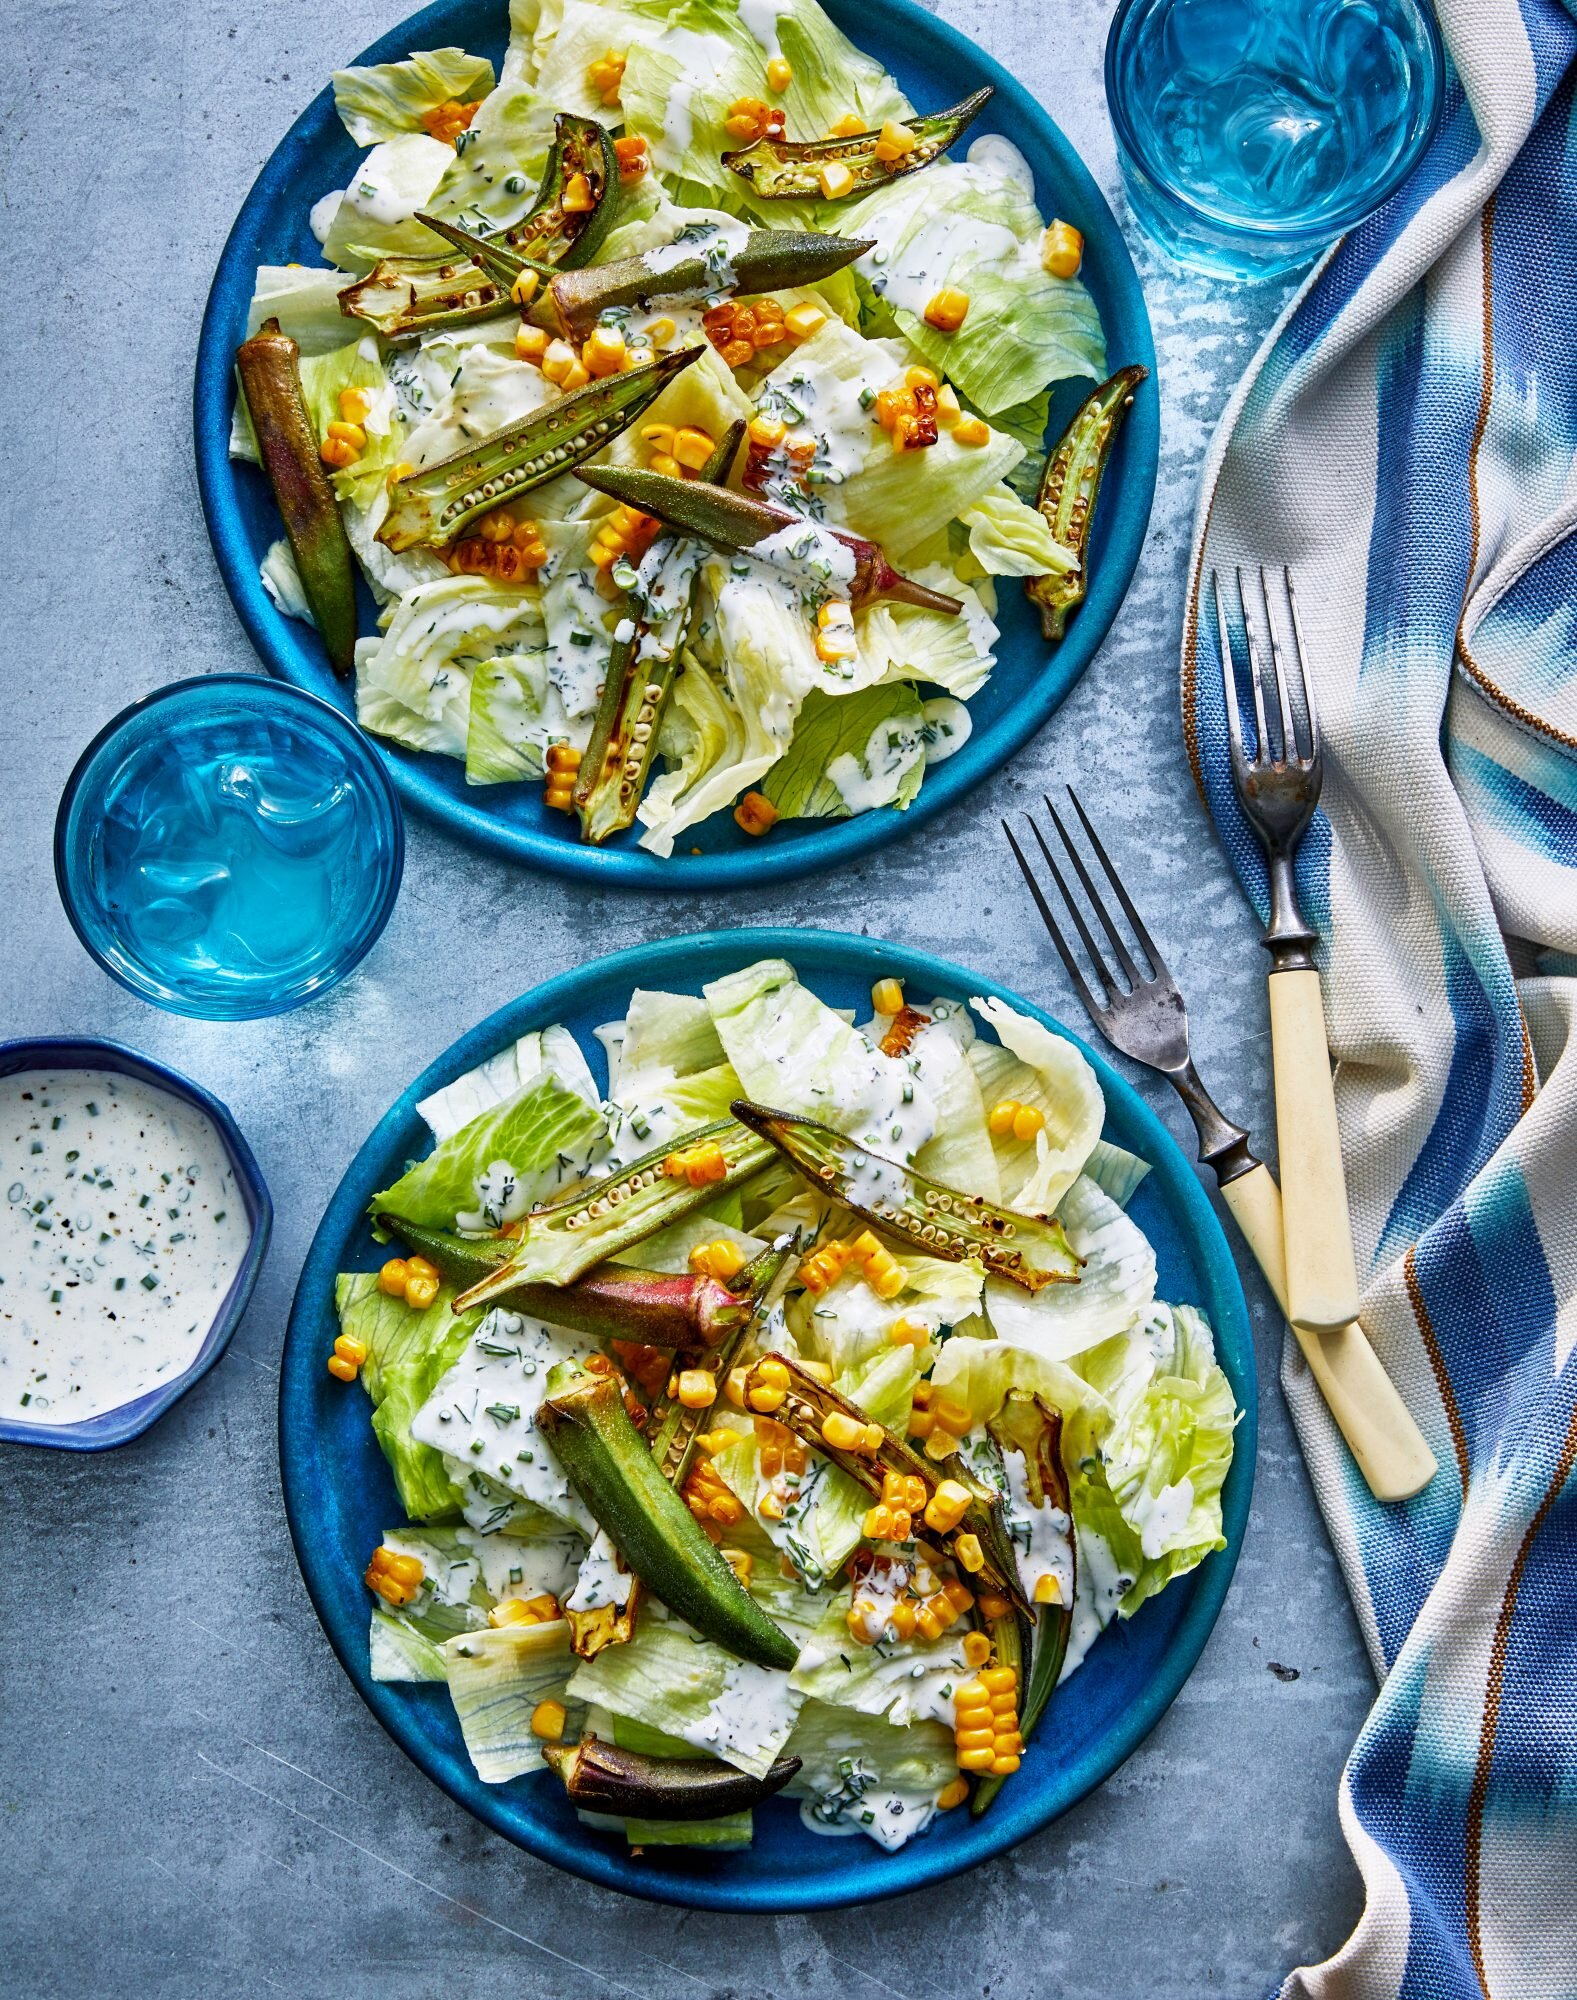 Crunchy Okra-and-Corn Salad with Ranch Dressing